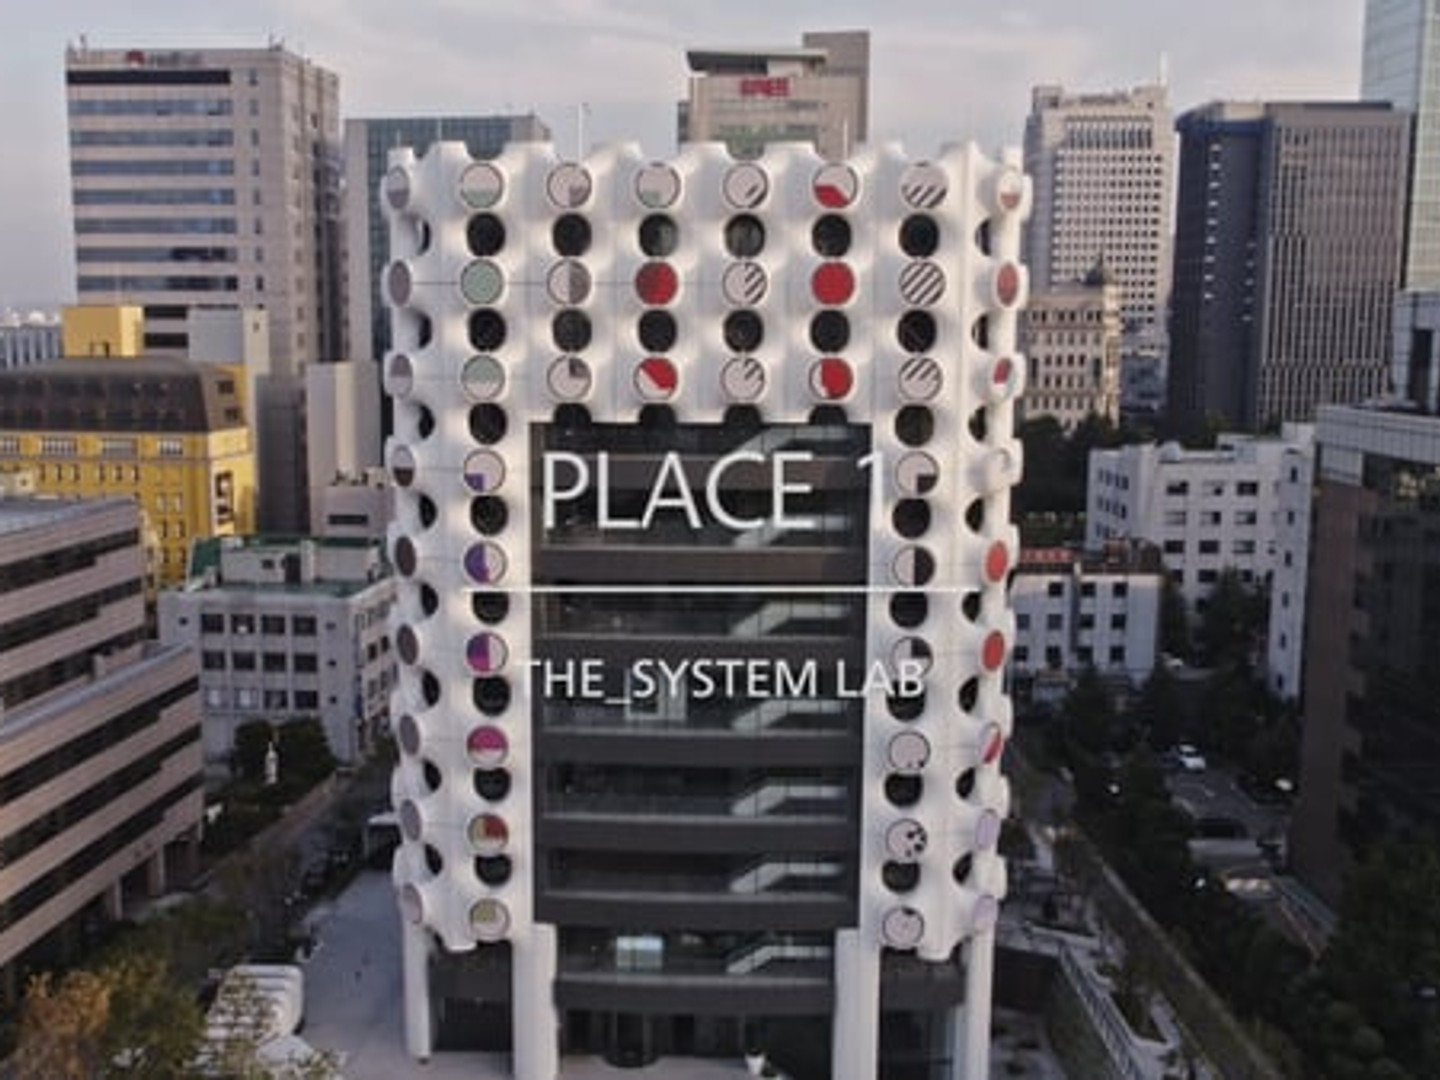 THE_SYSTEM LAB : Place 1